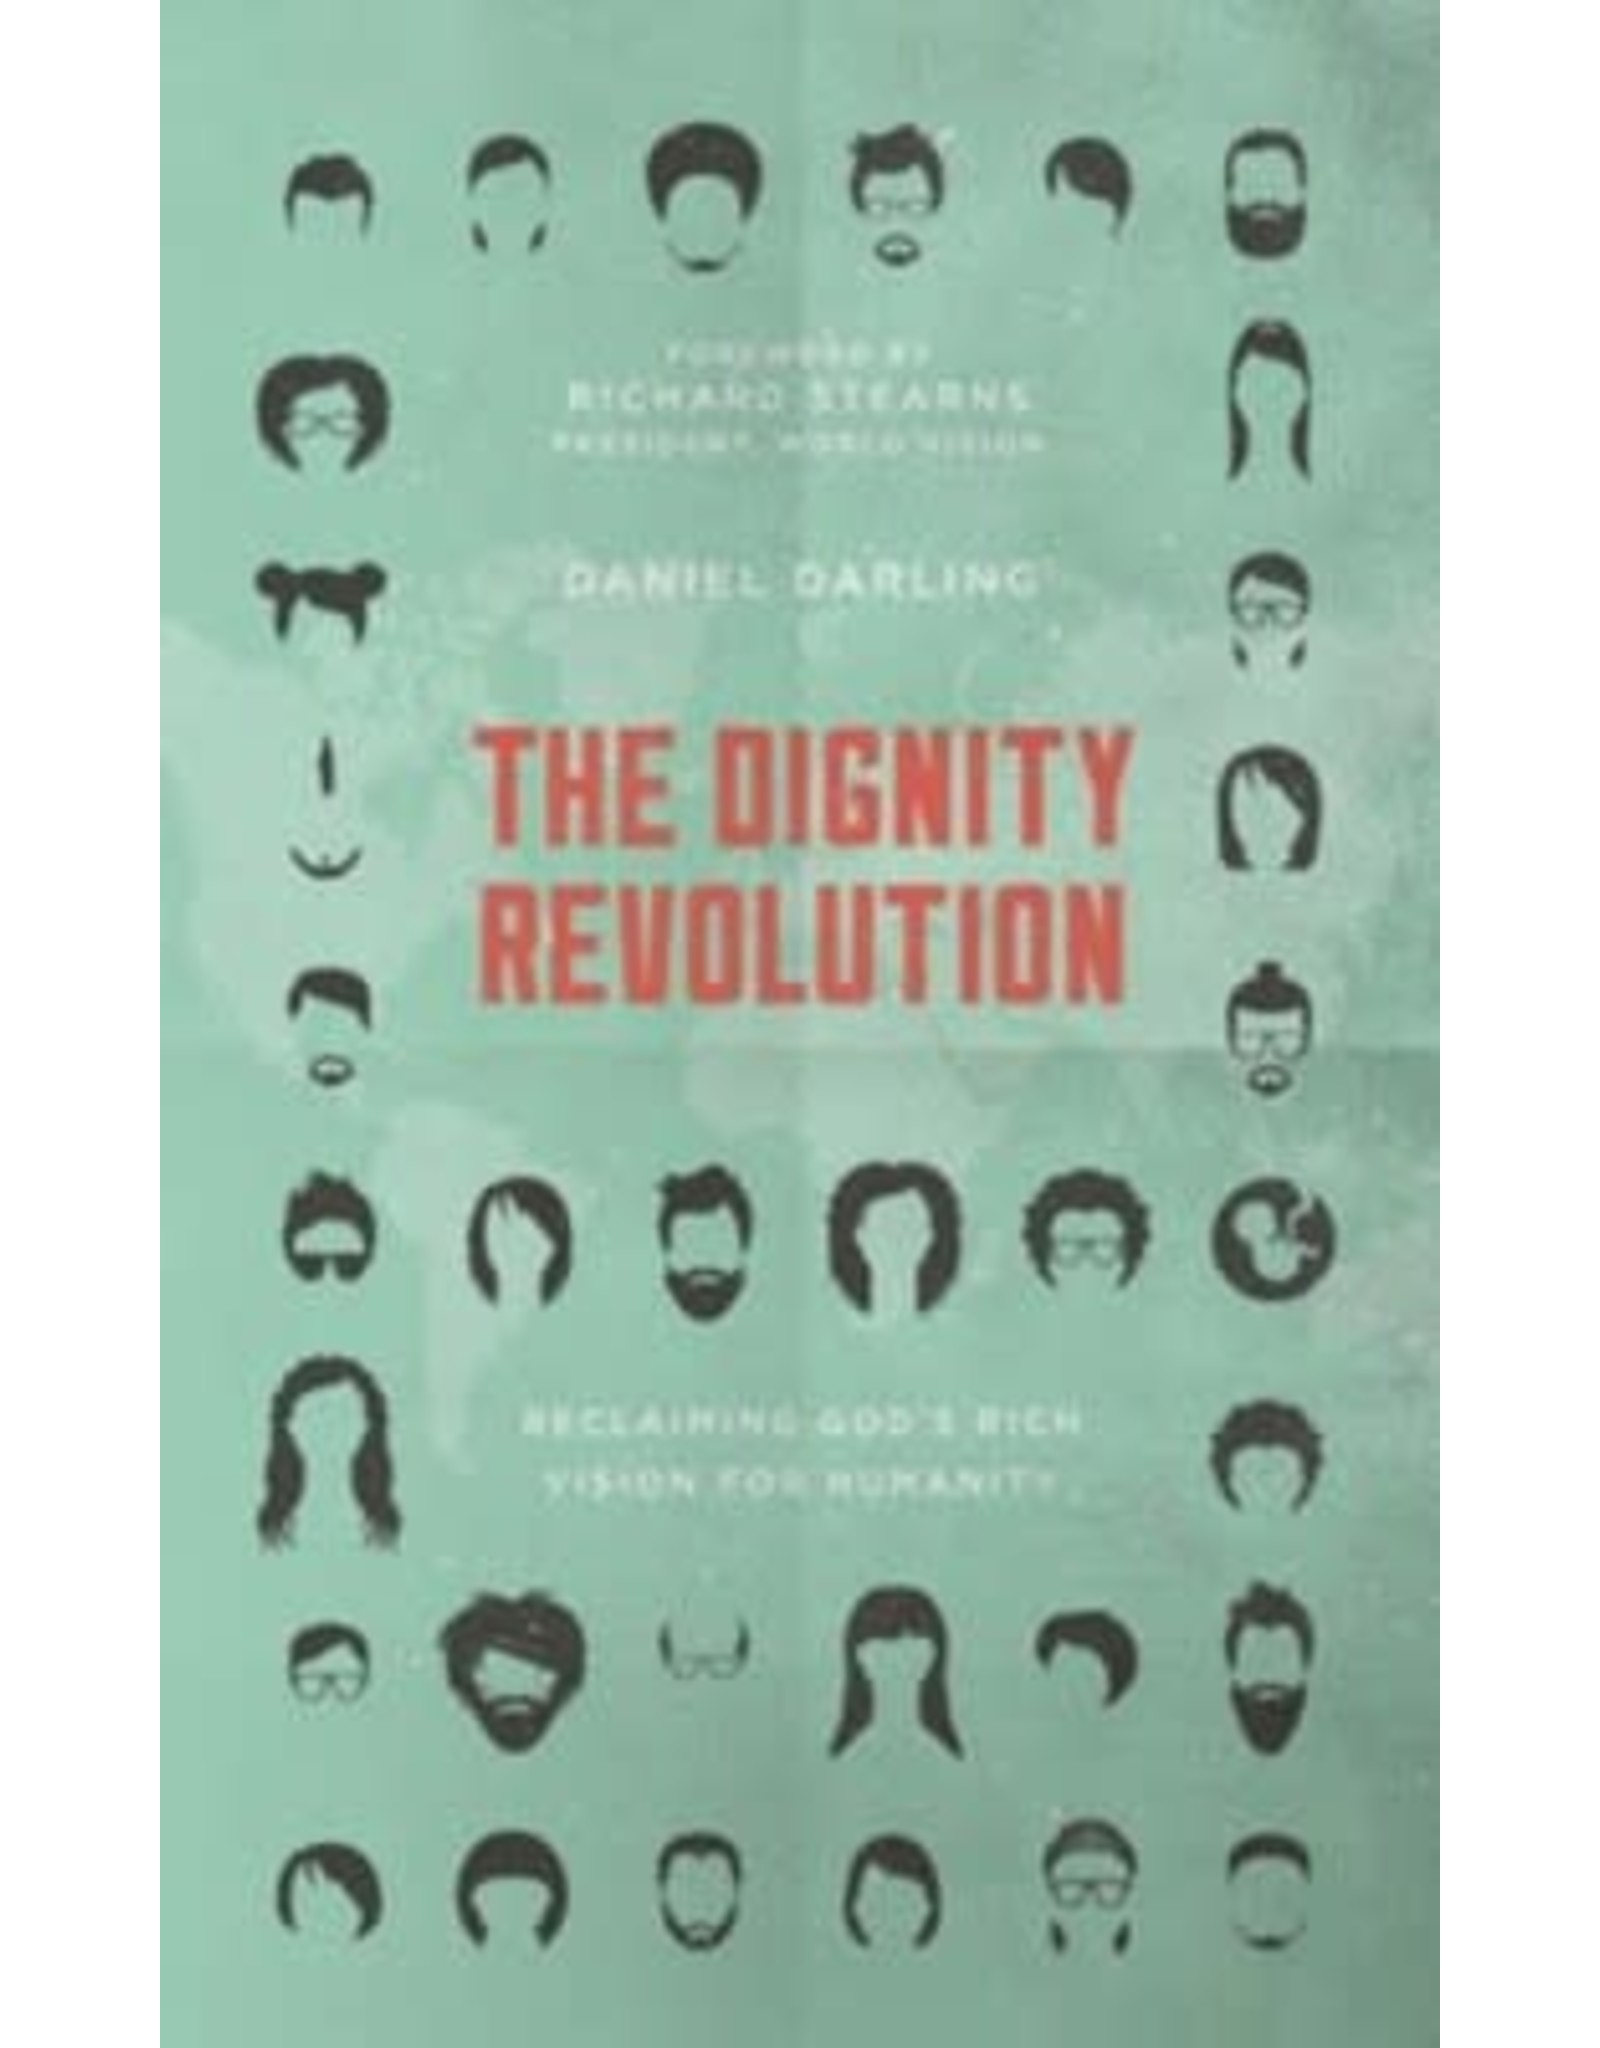 The Dignity Revolution